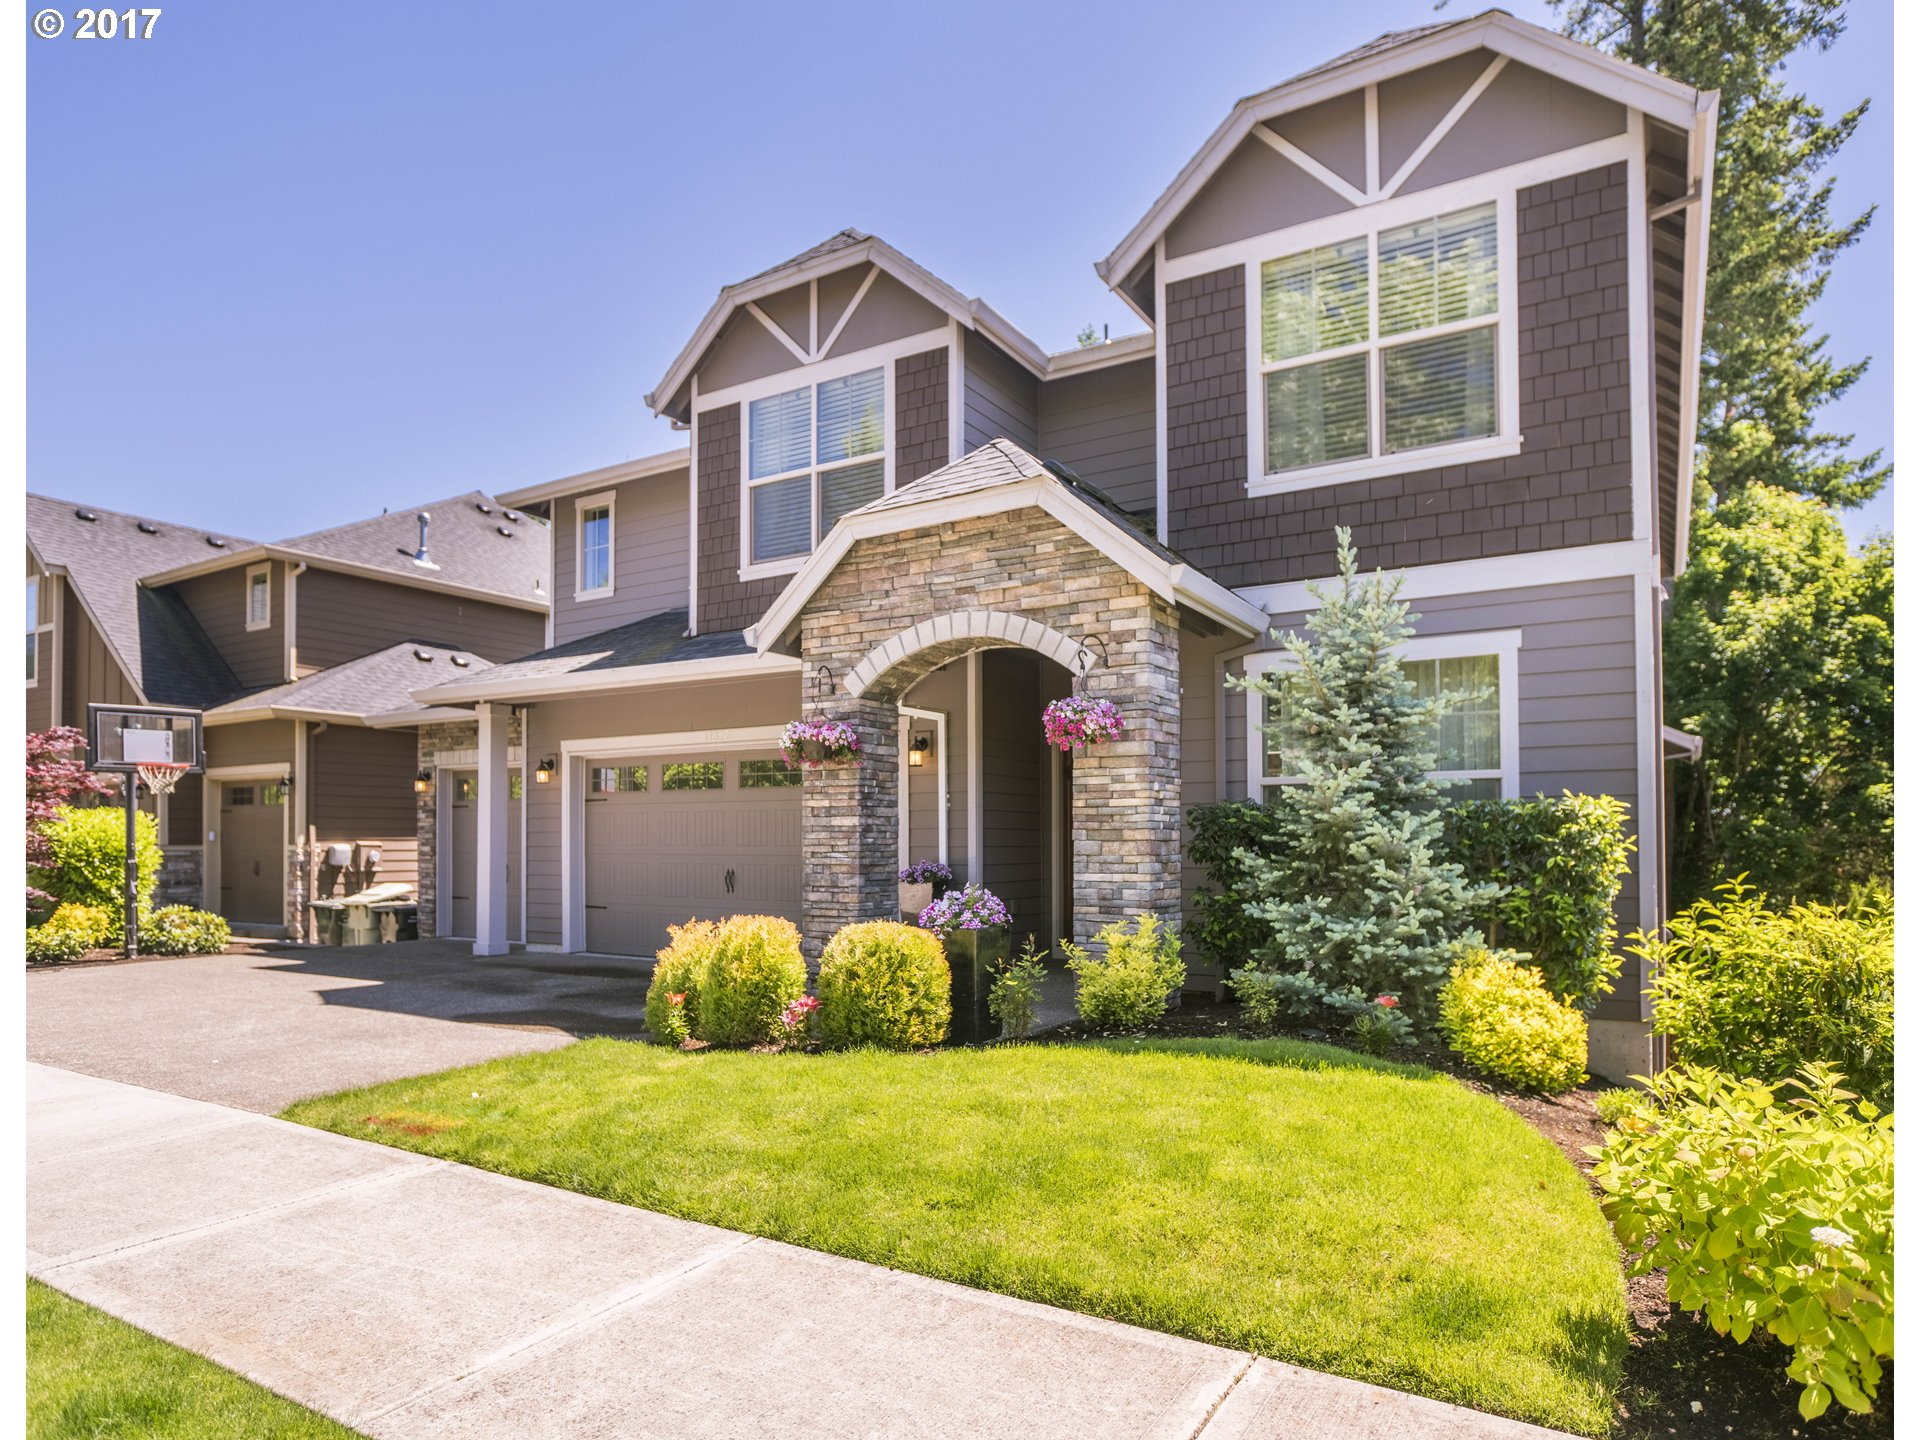 11376 NW DAMASCUS ST, Portland, OR 97229